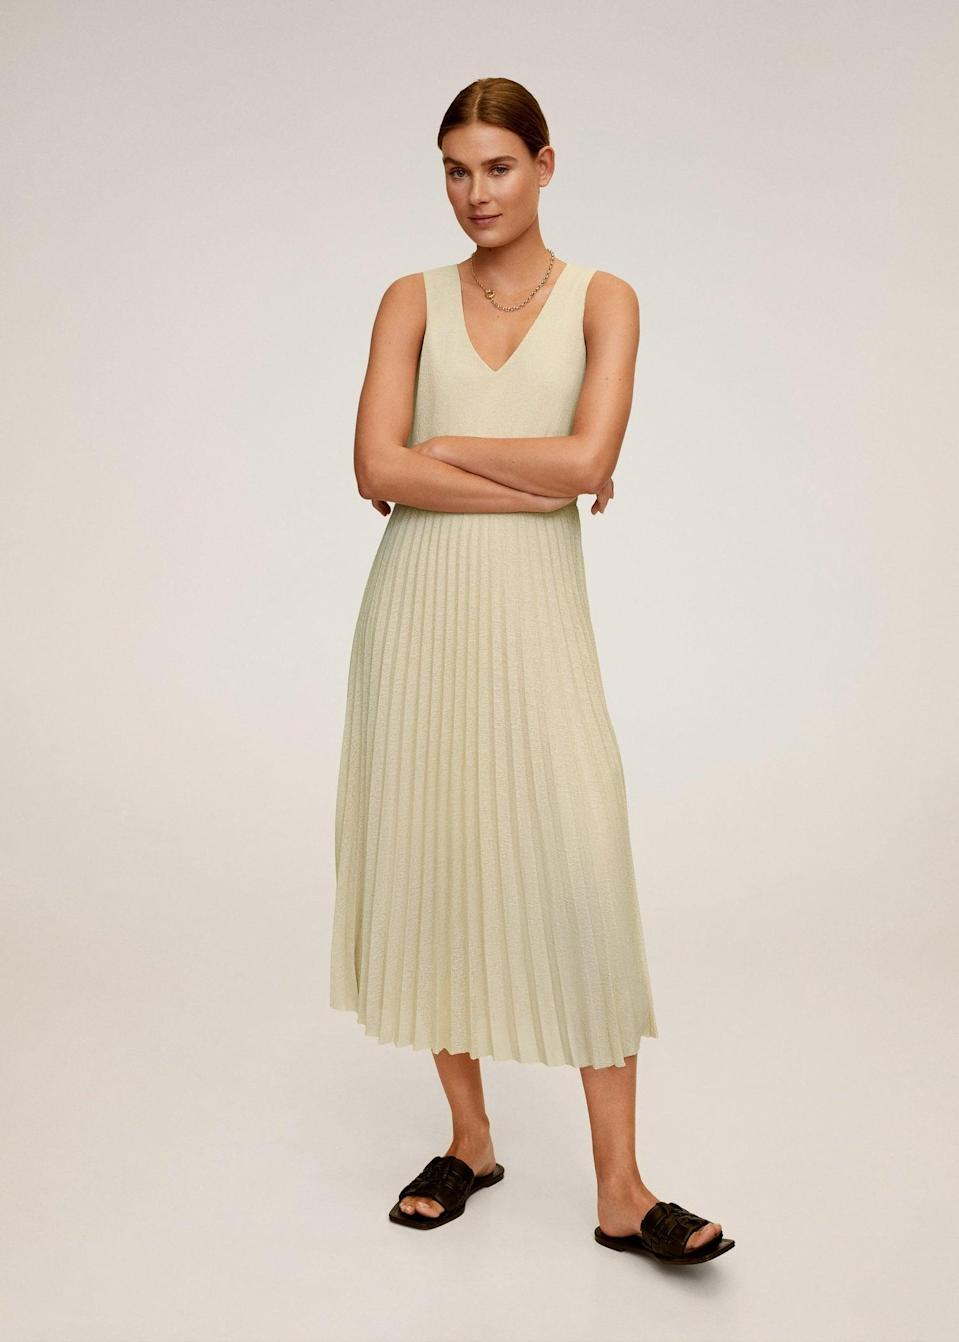 <p>This <span>Pleated midi dress</span> ($30, originally $60) adds a dose of glamour to any look.</p>